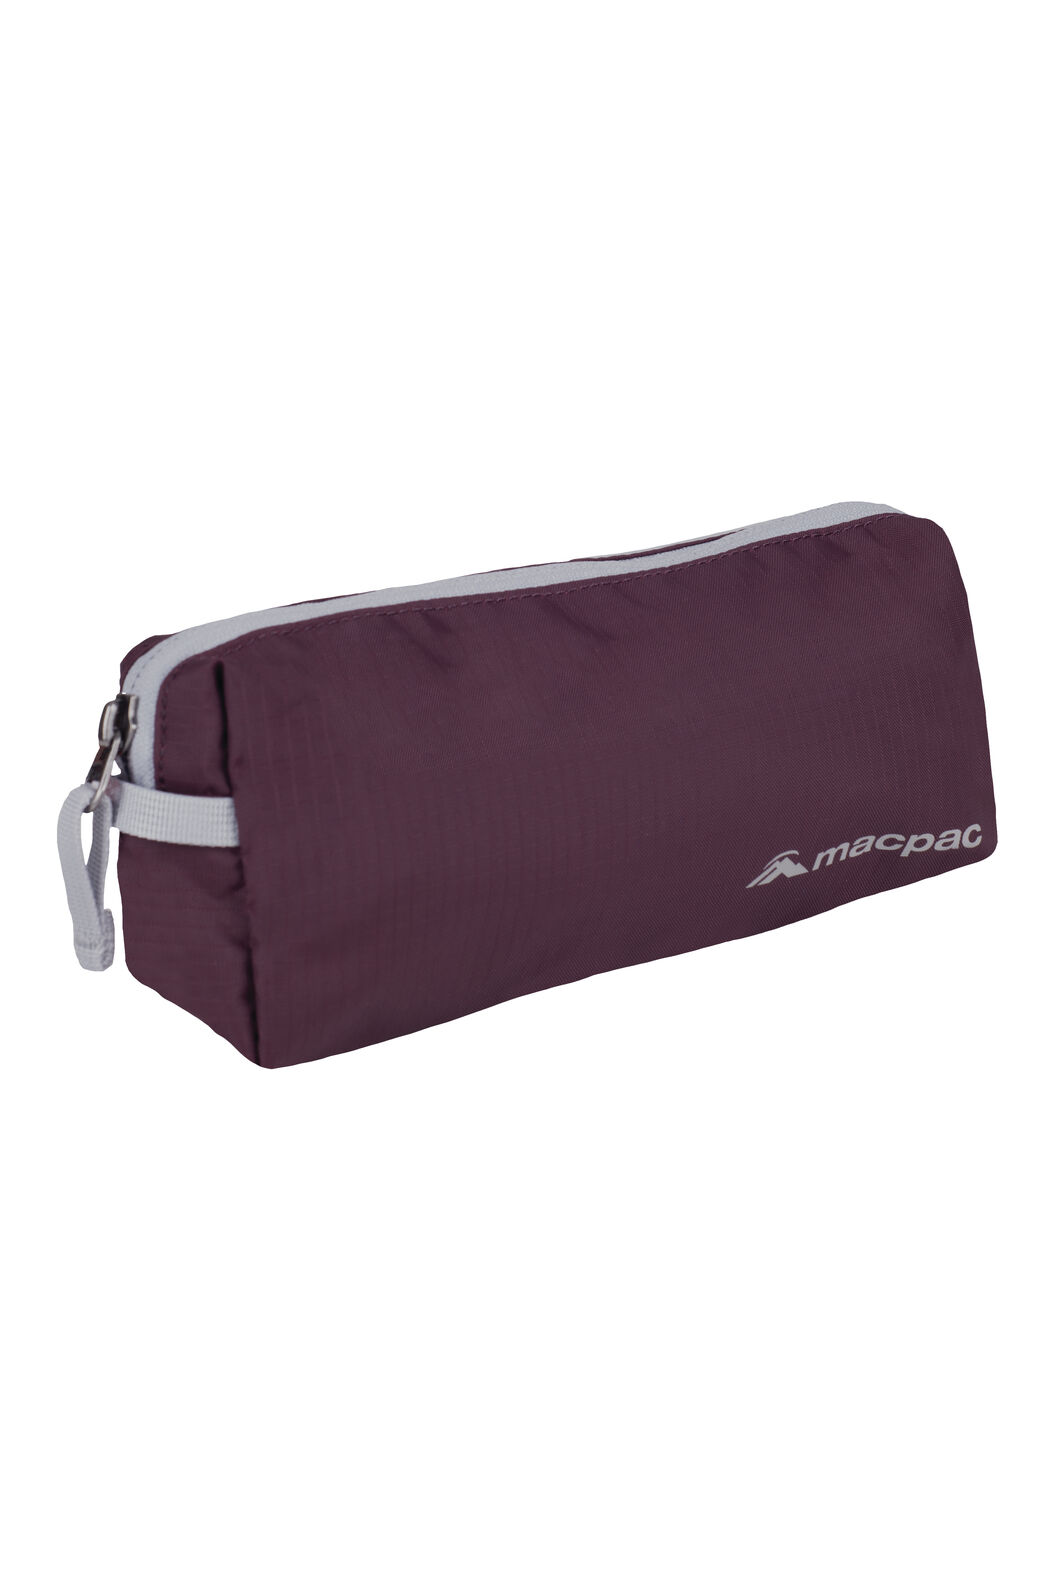 Macpac Carry-on Washbag, Winetasting, hi-res